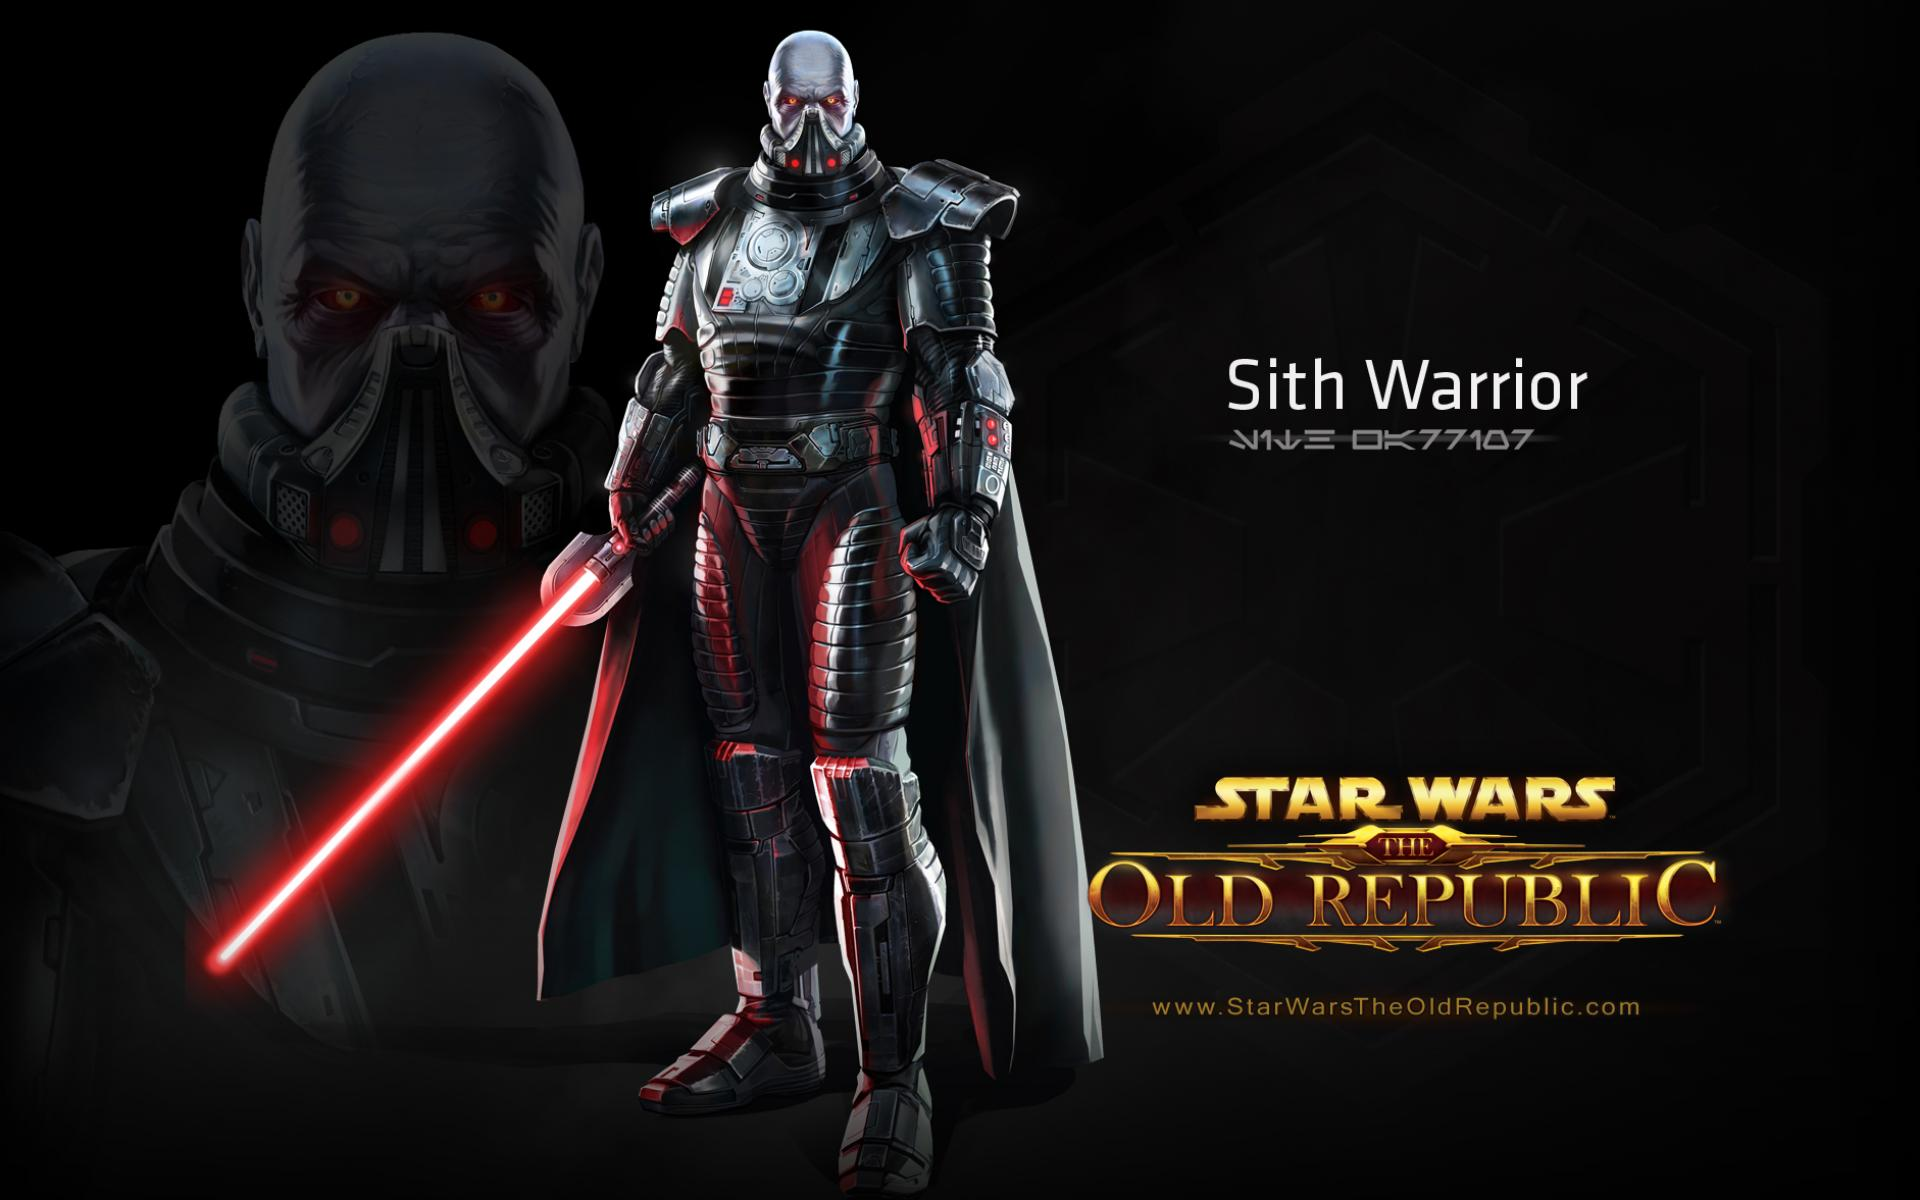 ���� Star Wars Old Republic - Sith Warrior, ������� 1920x1200